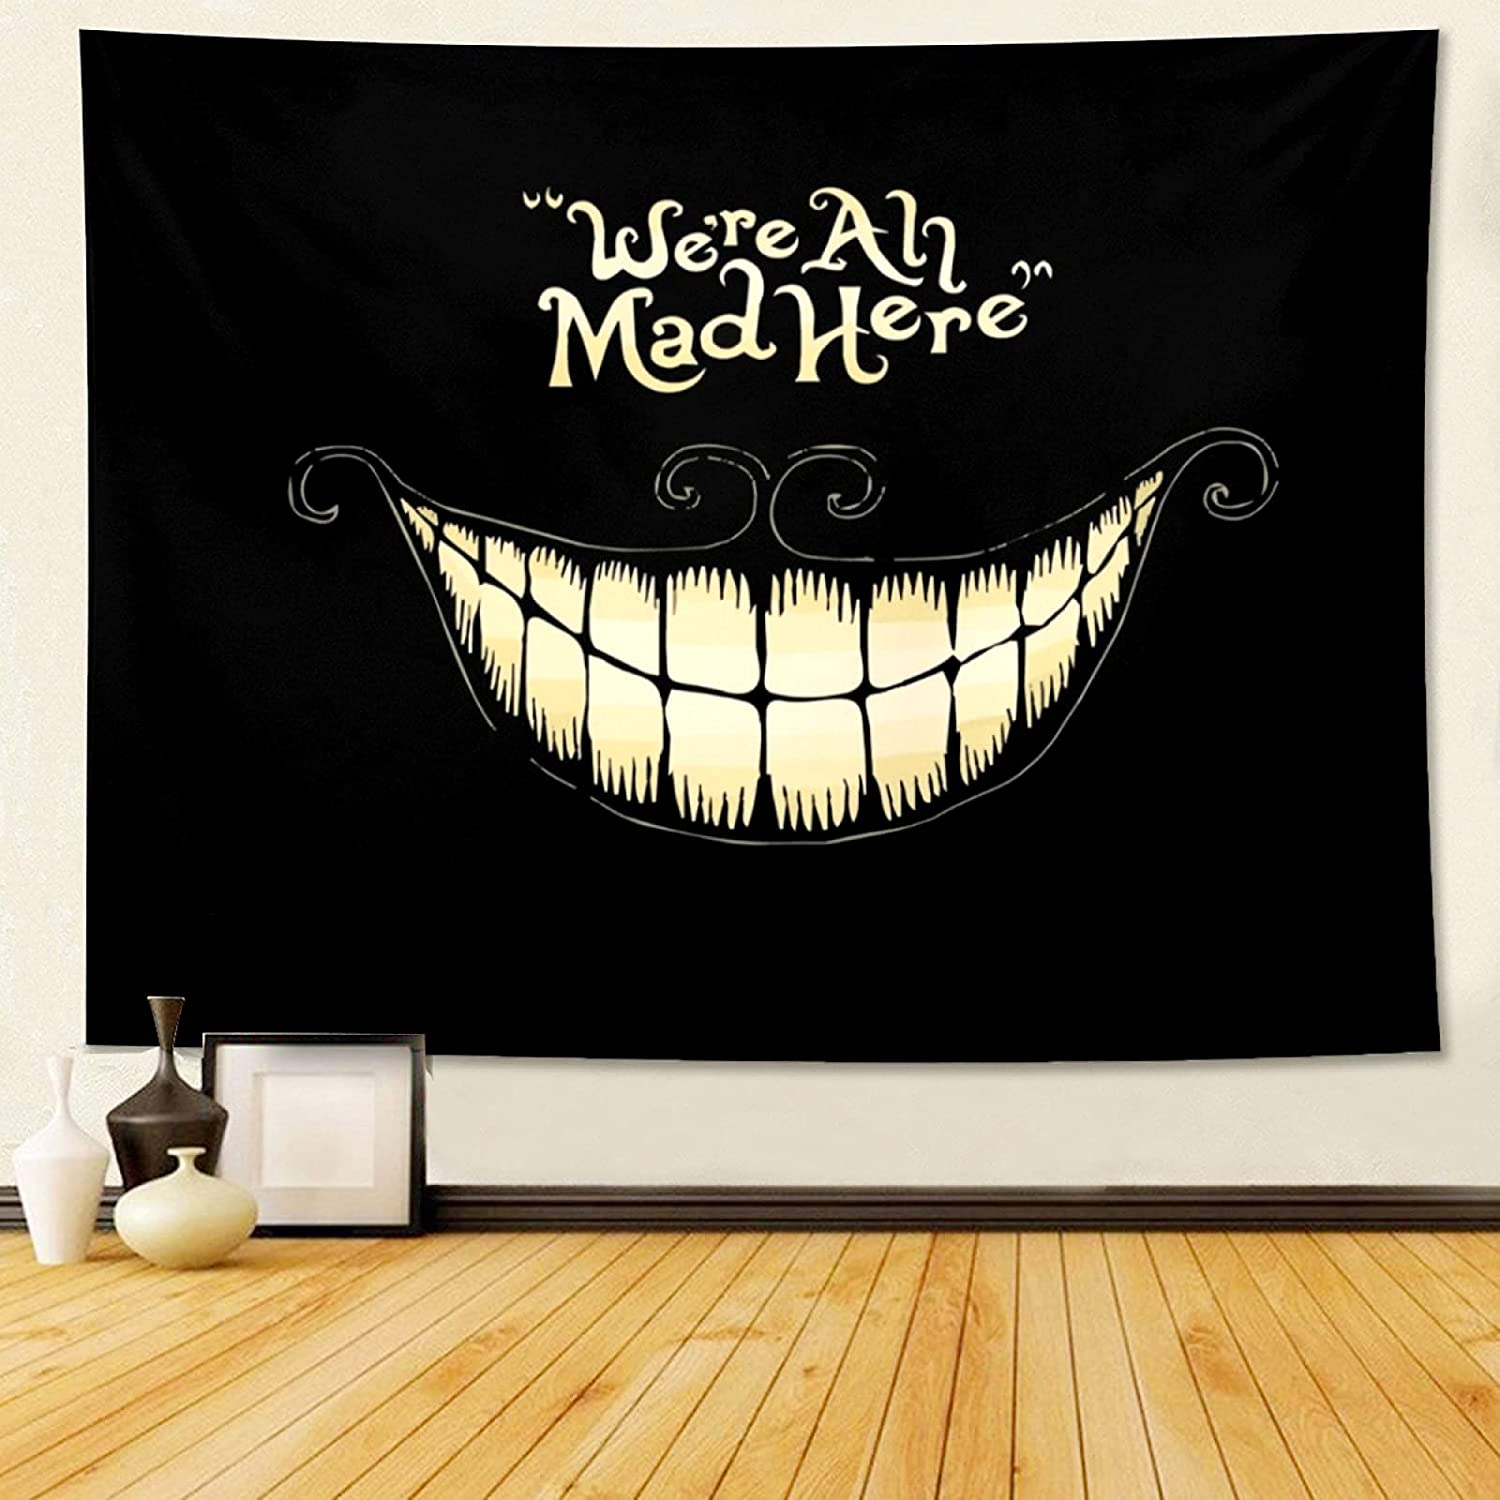 We're All_Mad Here Aesthetic Tapestry Wall Hanging Art Tapestries Funny Black Backdrop Posters Decoration for Teens Boys Girls Gifts Living Room Dorm Bedroom Home Party Decor (40×60 Inches)